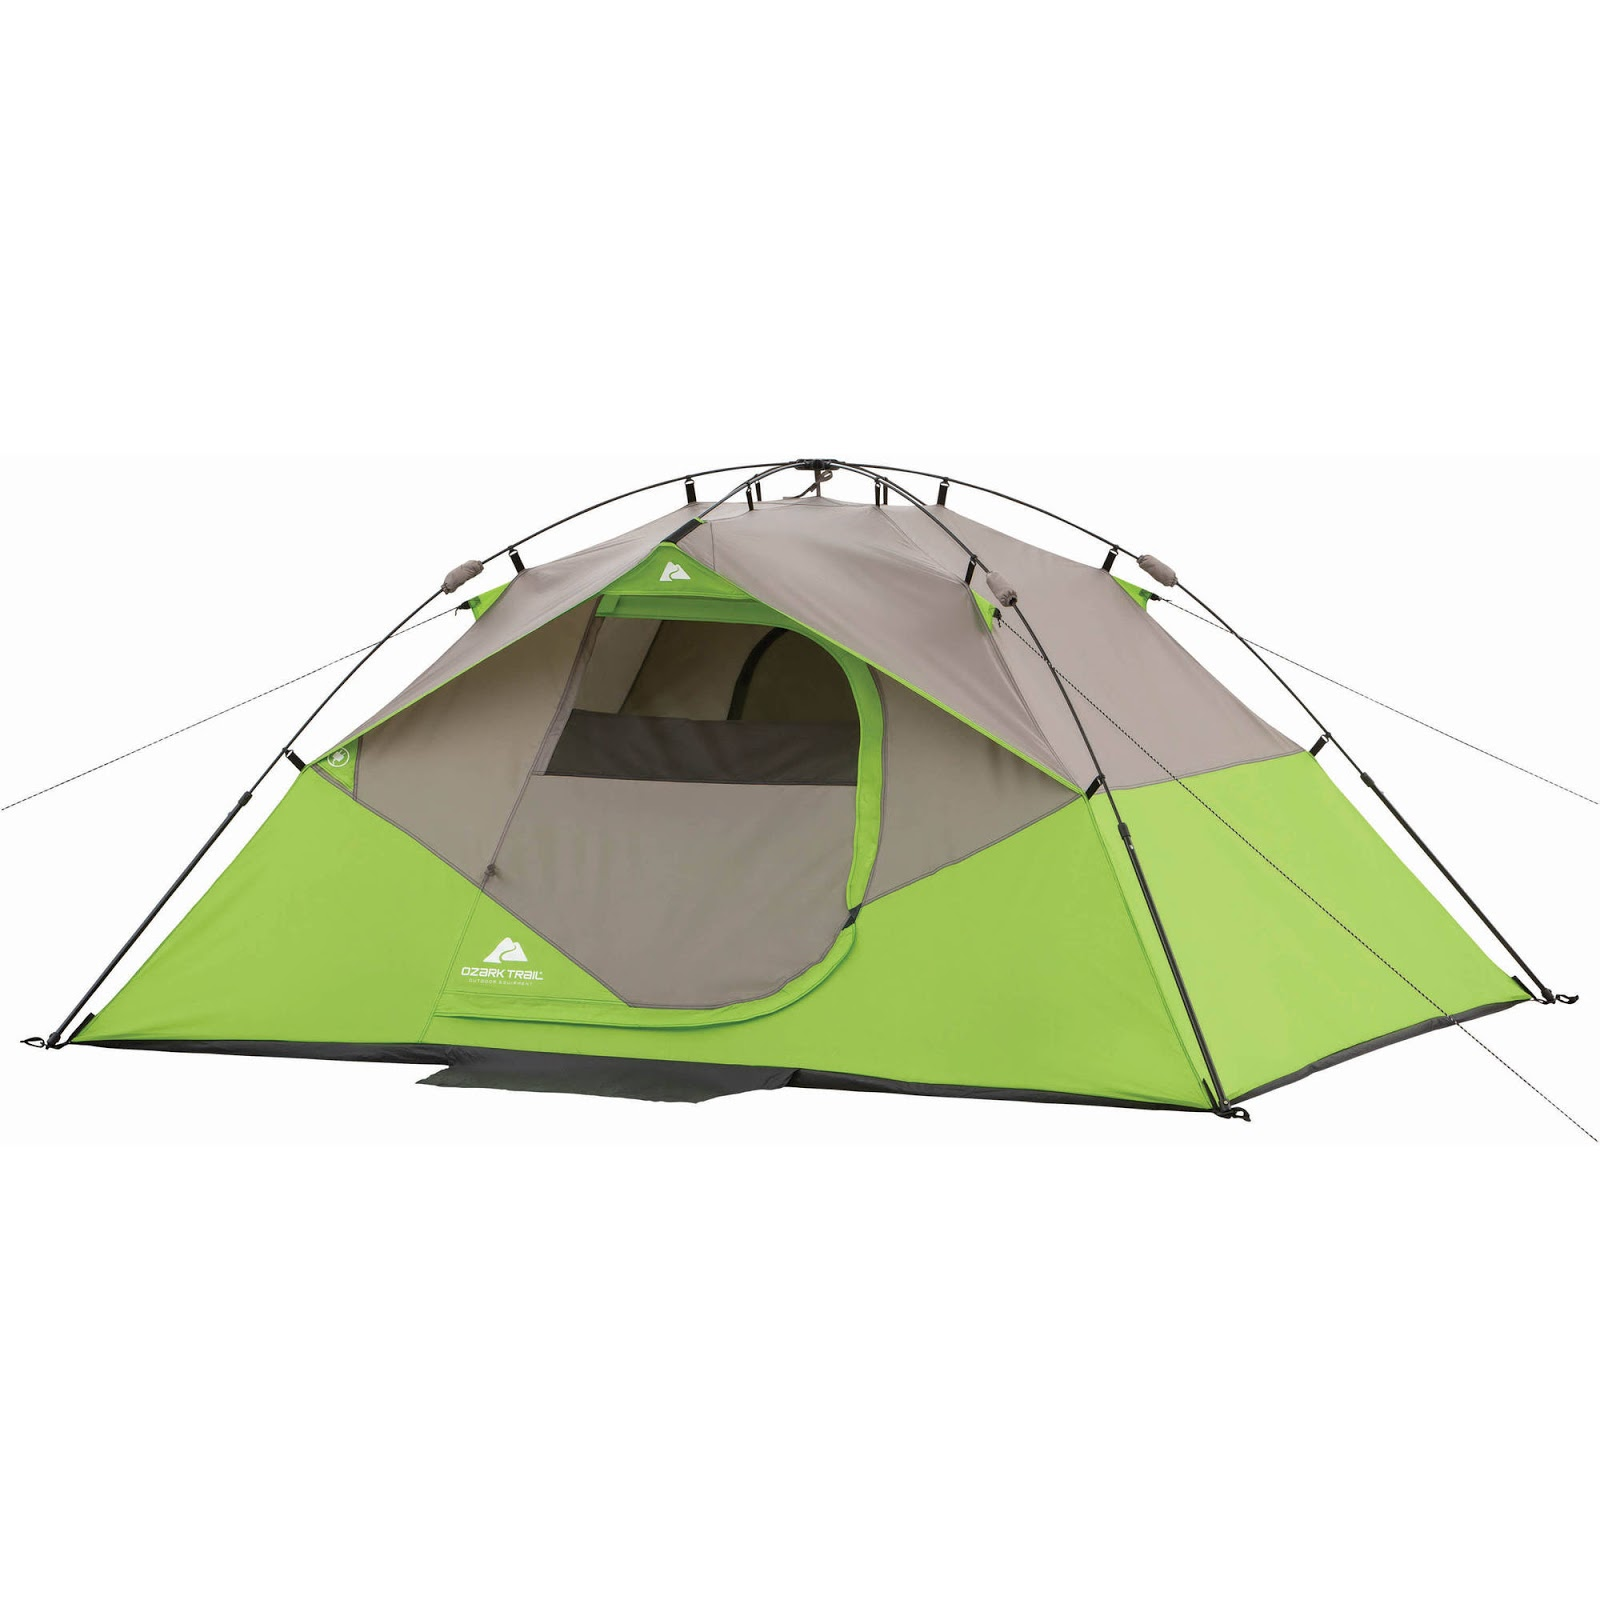 Ozark Trail Tents Replacement Parts